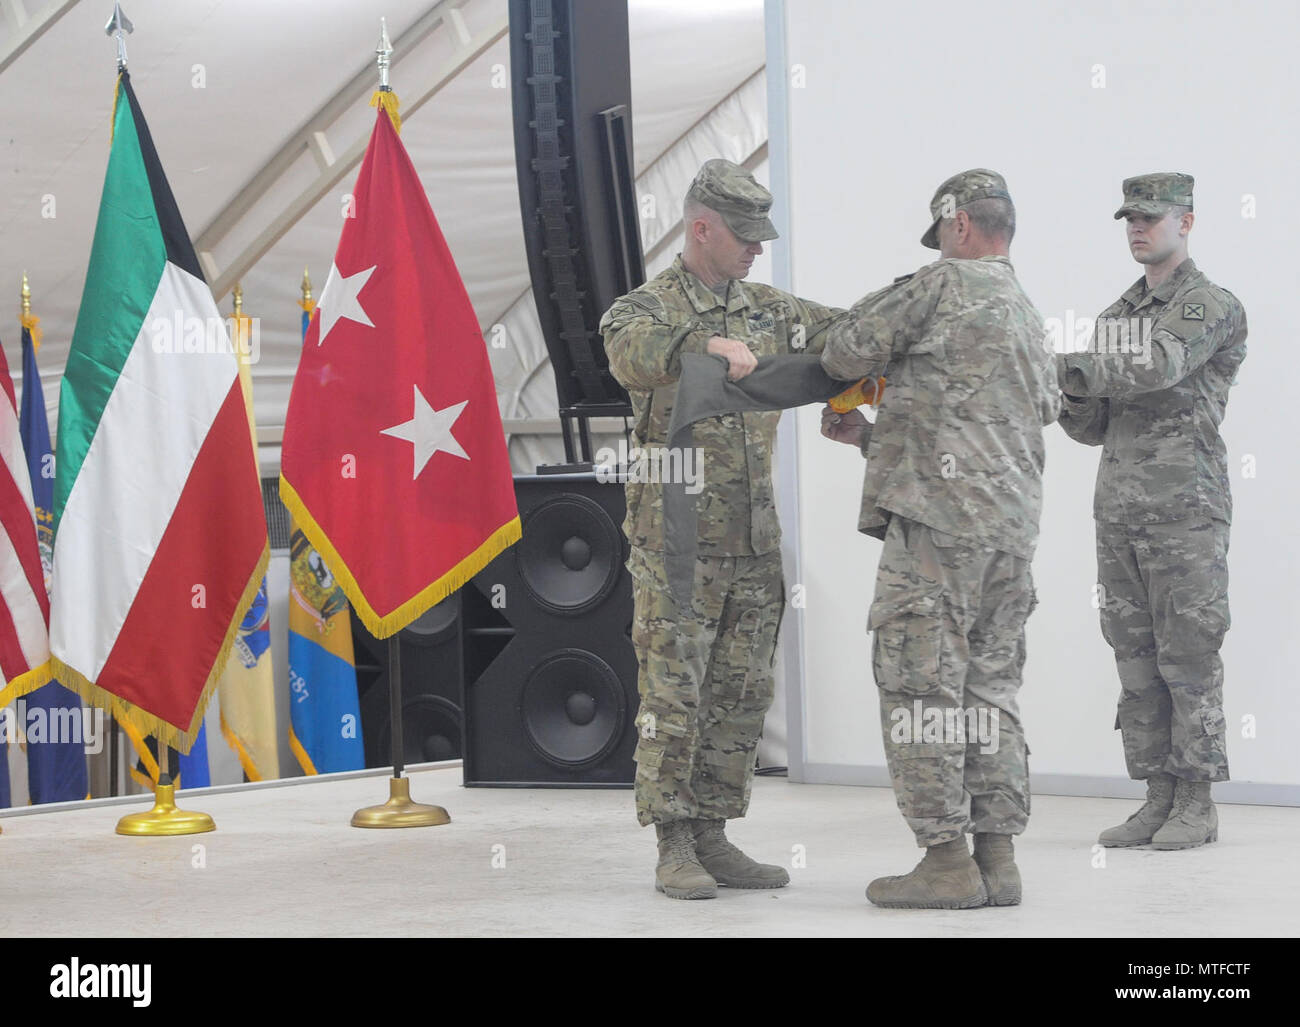 Col. Ryan Pace and Command Sgt. Maj. Thomas Mize case the 77th Combat Aviation Brigade Colors during their Transfer of Authority Ceremony on April 23. The TOA signals the transference of responsibility for theater aviation operations to the incoming 29th CAB at Camp Buehring, Kuwait (US. Army - Stock Image